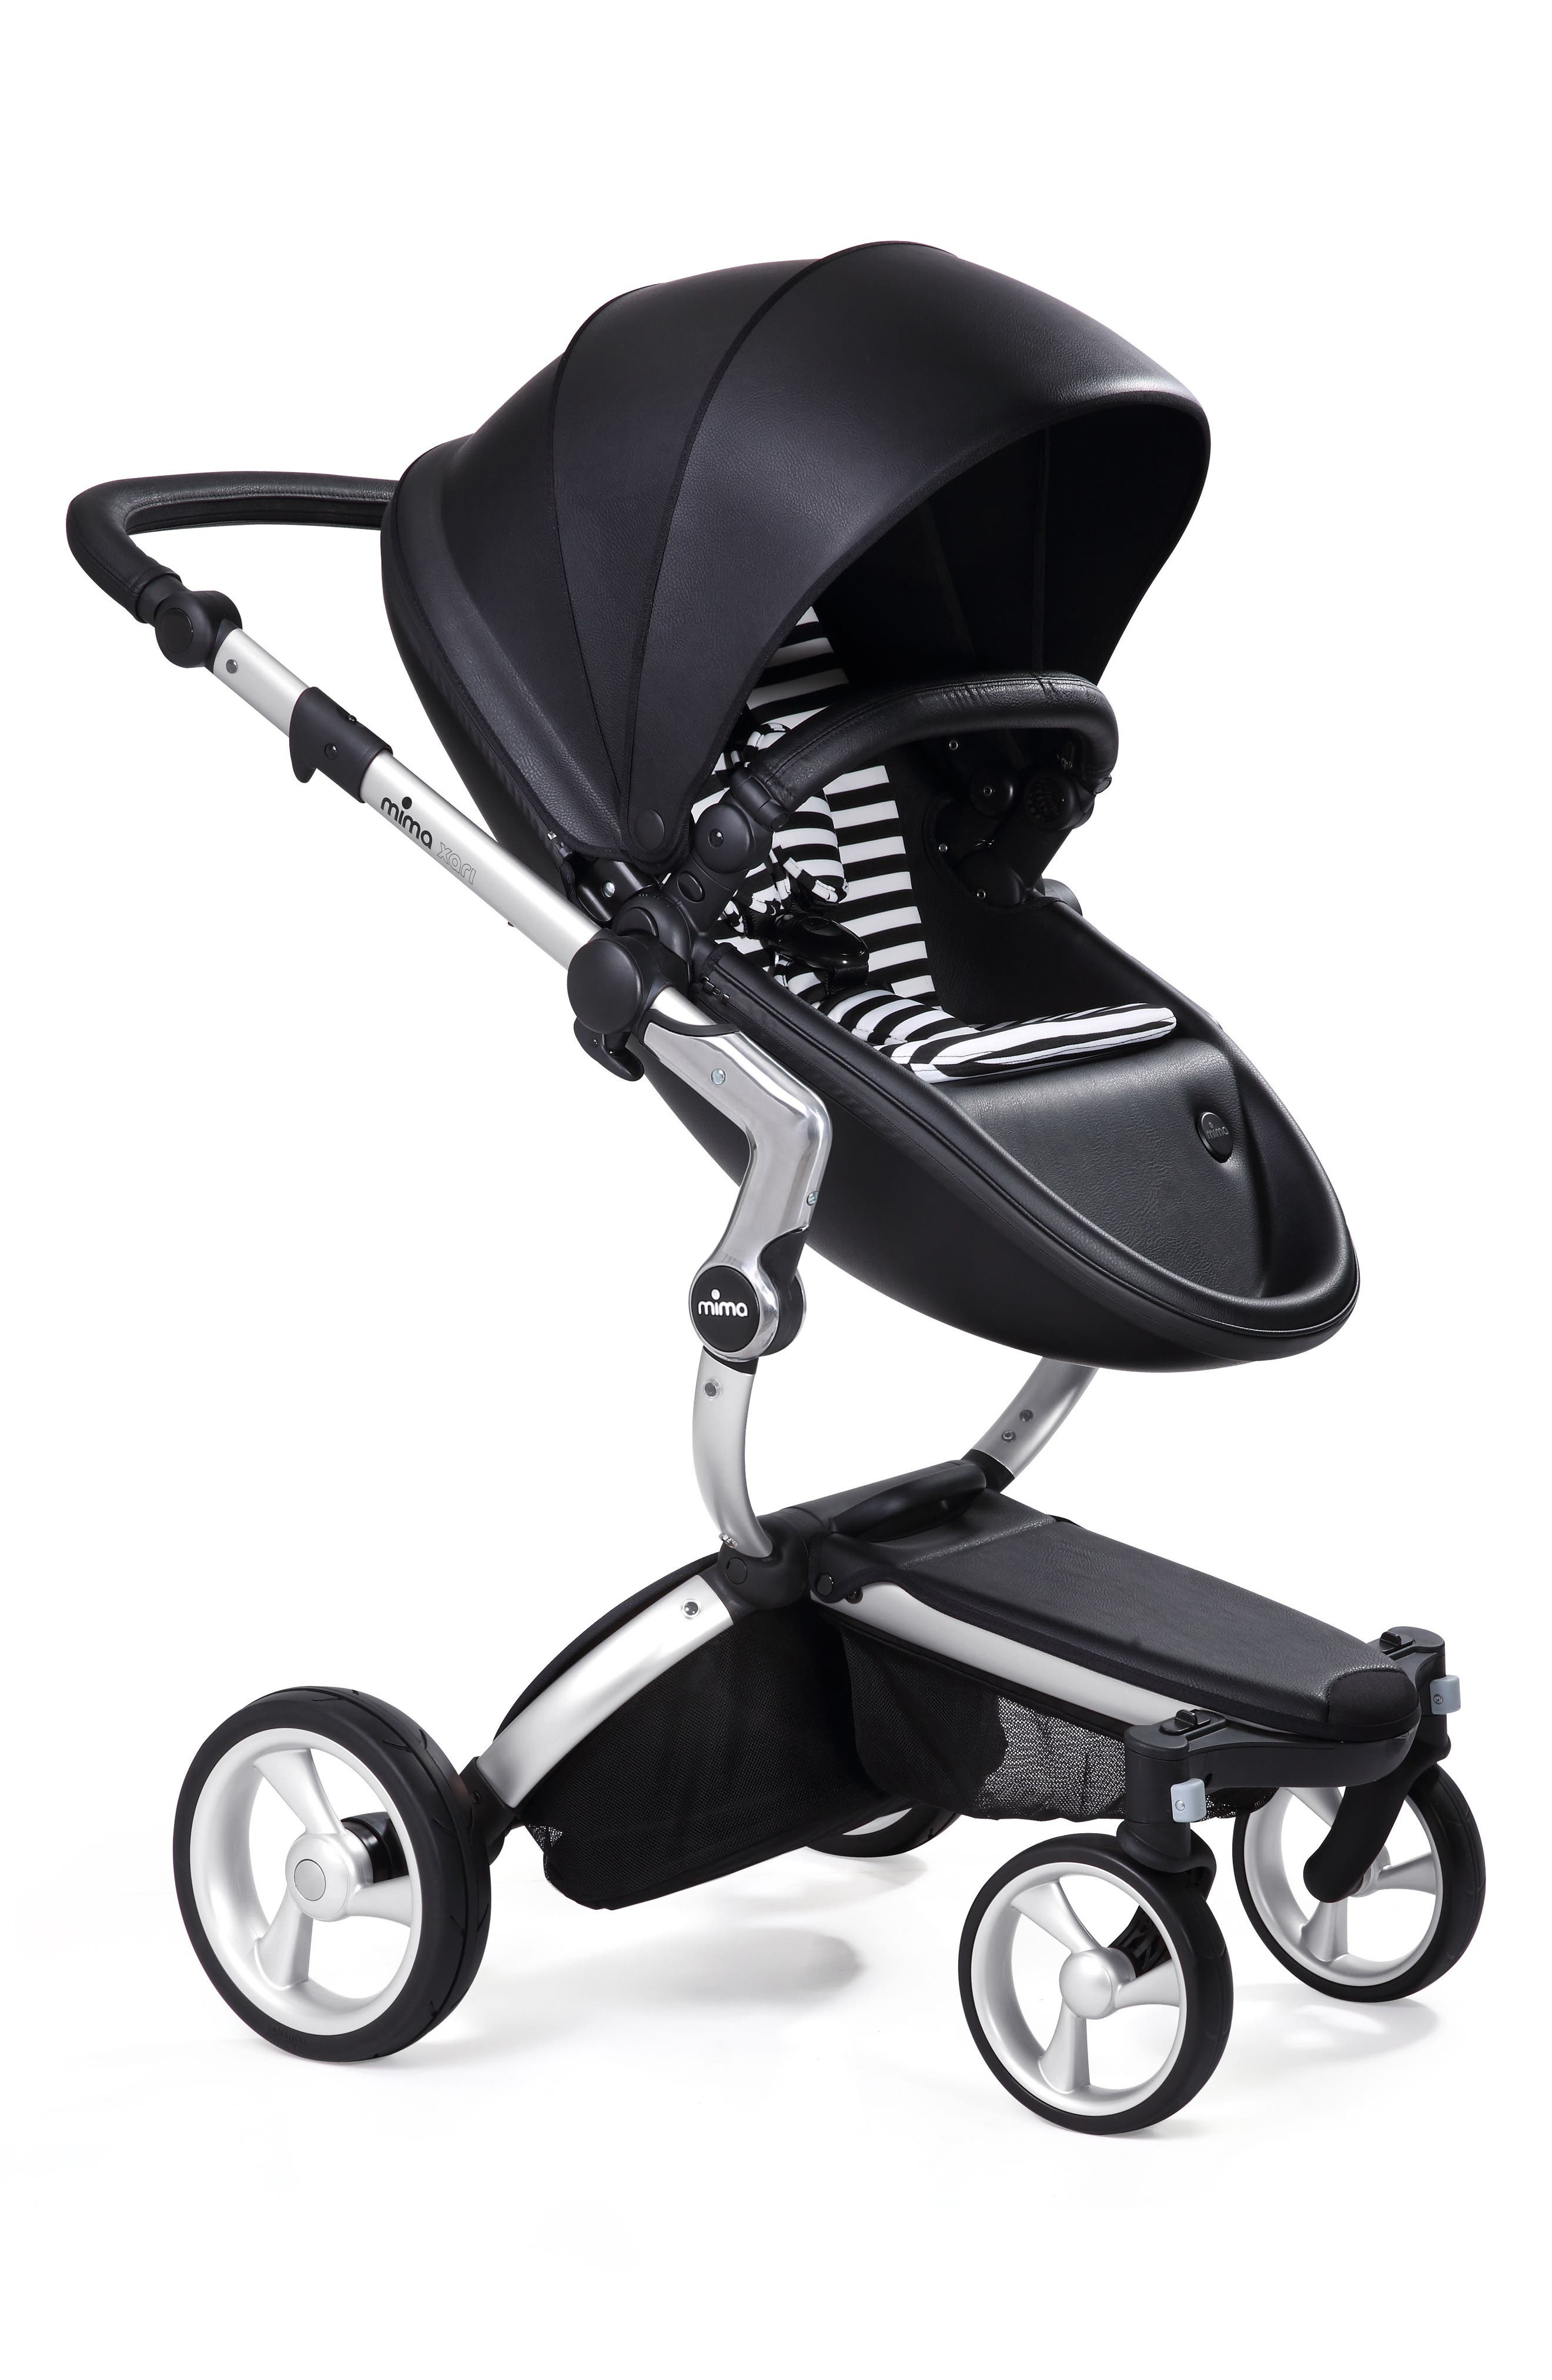 Infant Mima Xari Aluminum Chassis Stroller With Reversible Reclining Seat  Carrycot Size One Size  Black